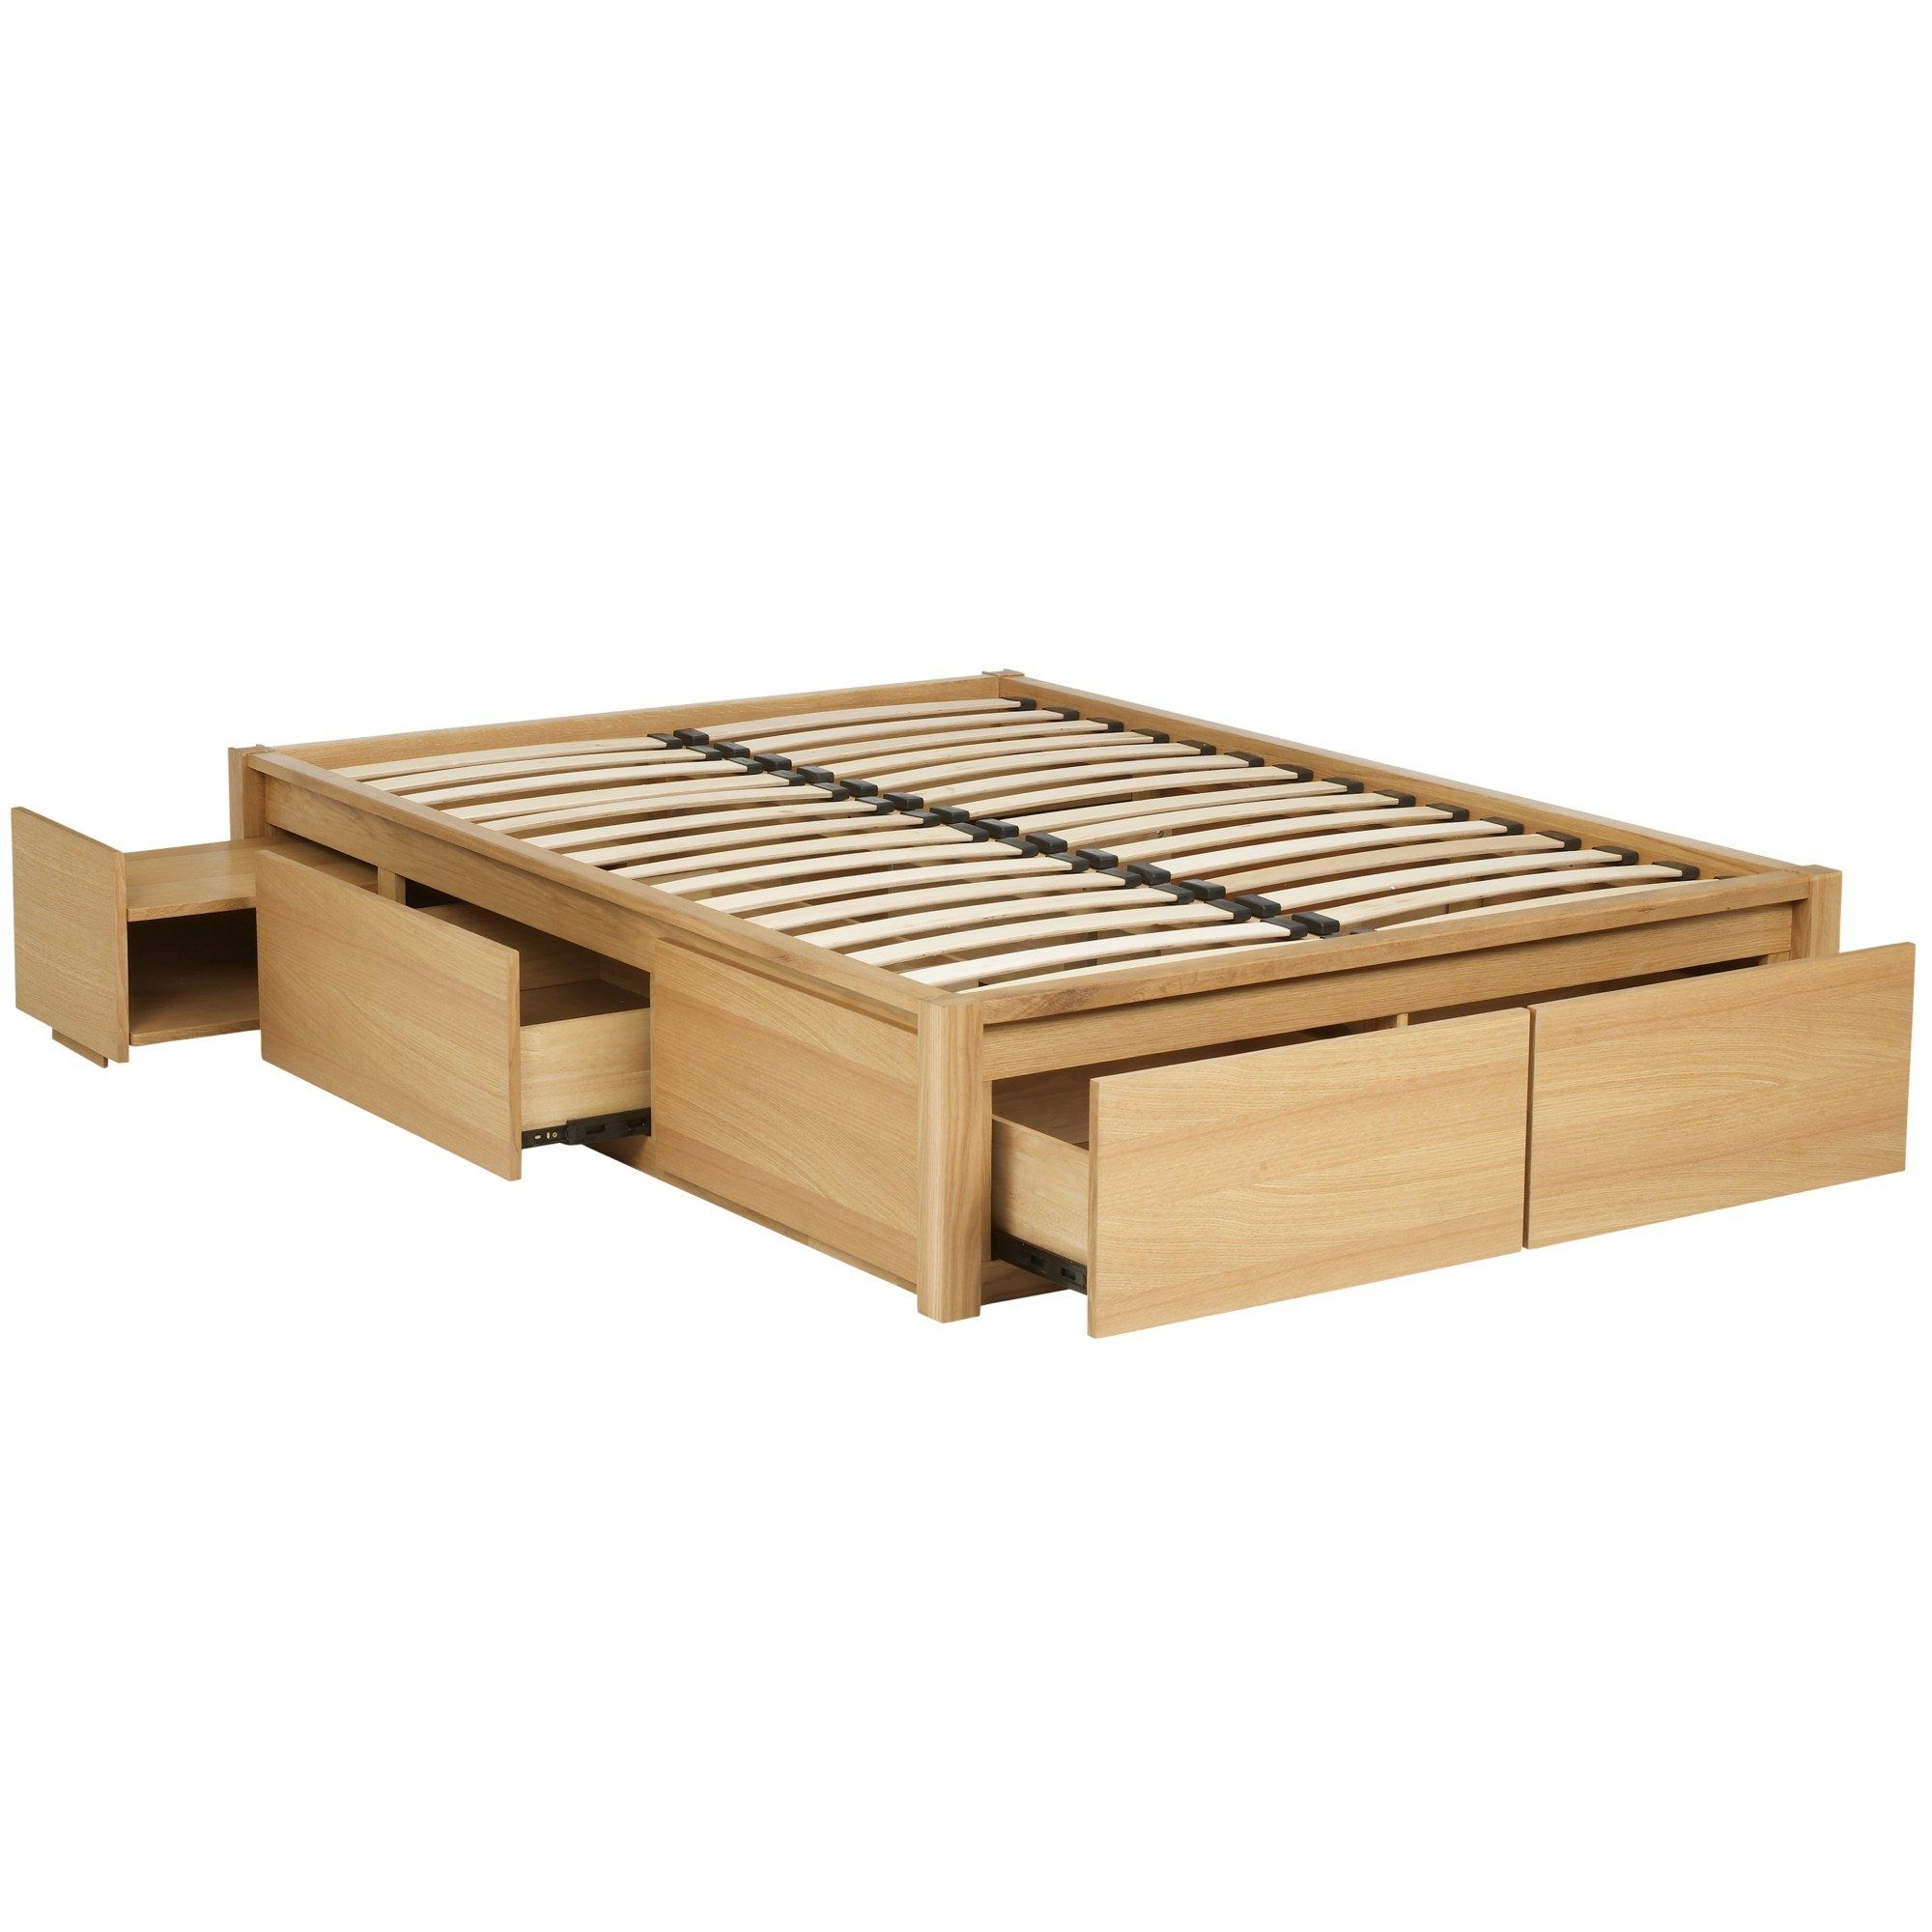 White Wooden King Size Bed With Drawer Underneath Bedroom Is Also A Kind Of Bed Frame S Bed Frame With Storage Platform Bed With Drawers Bed Frame With Drawers